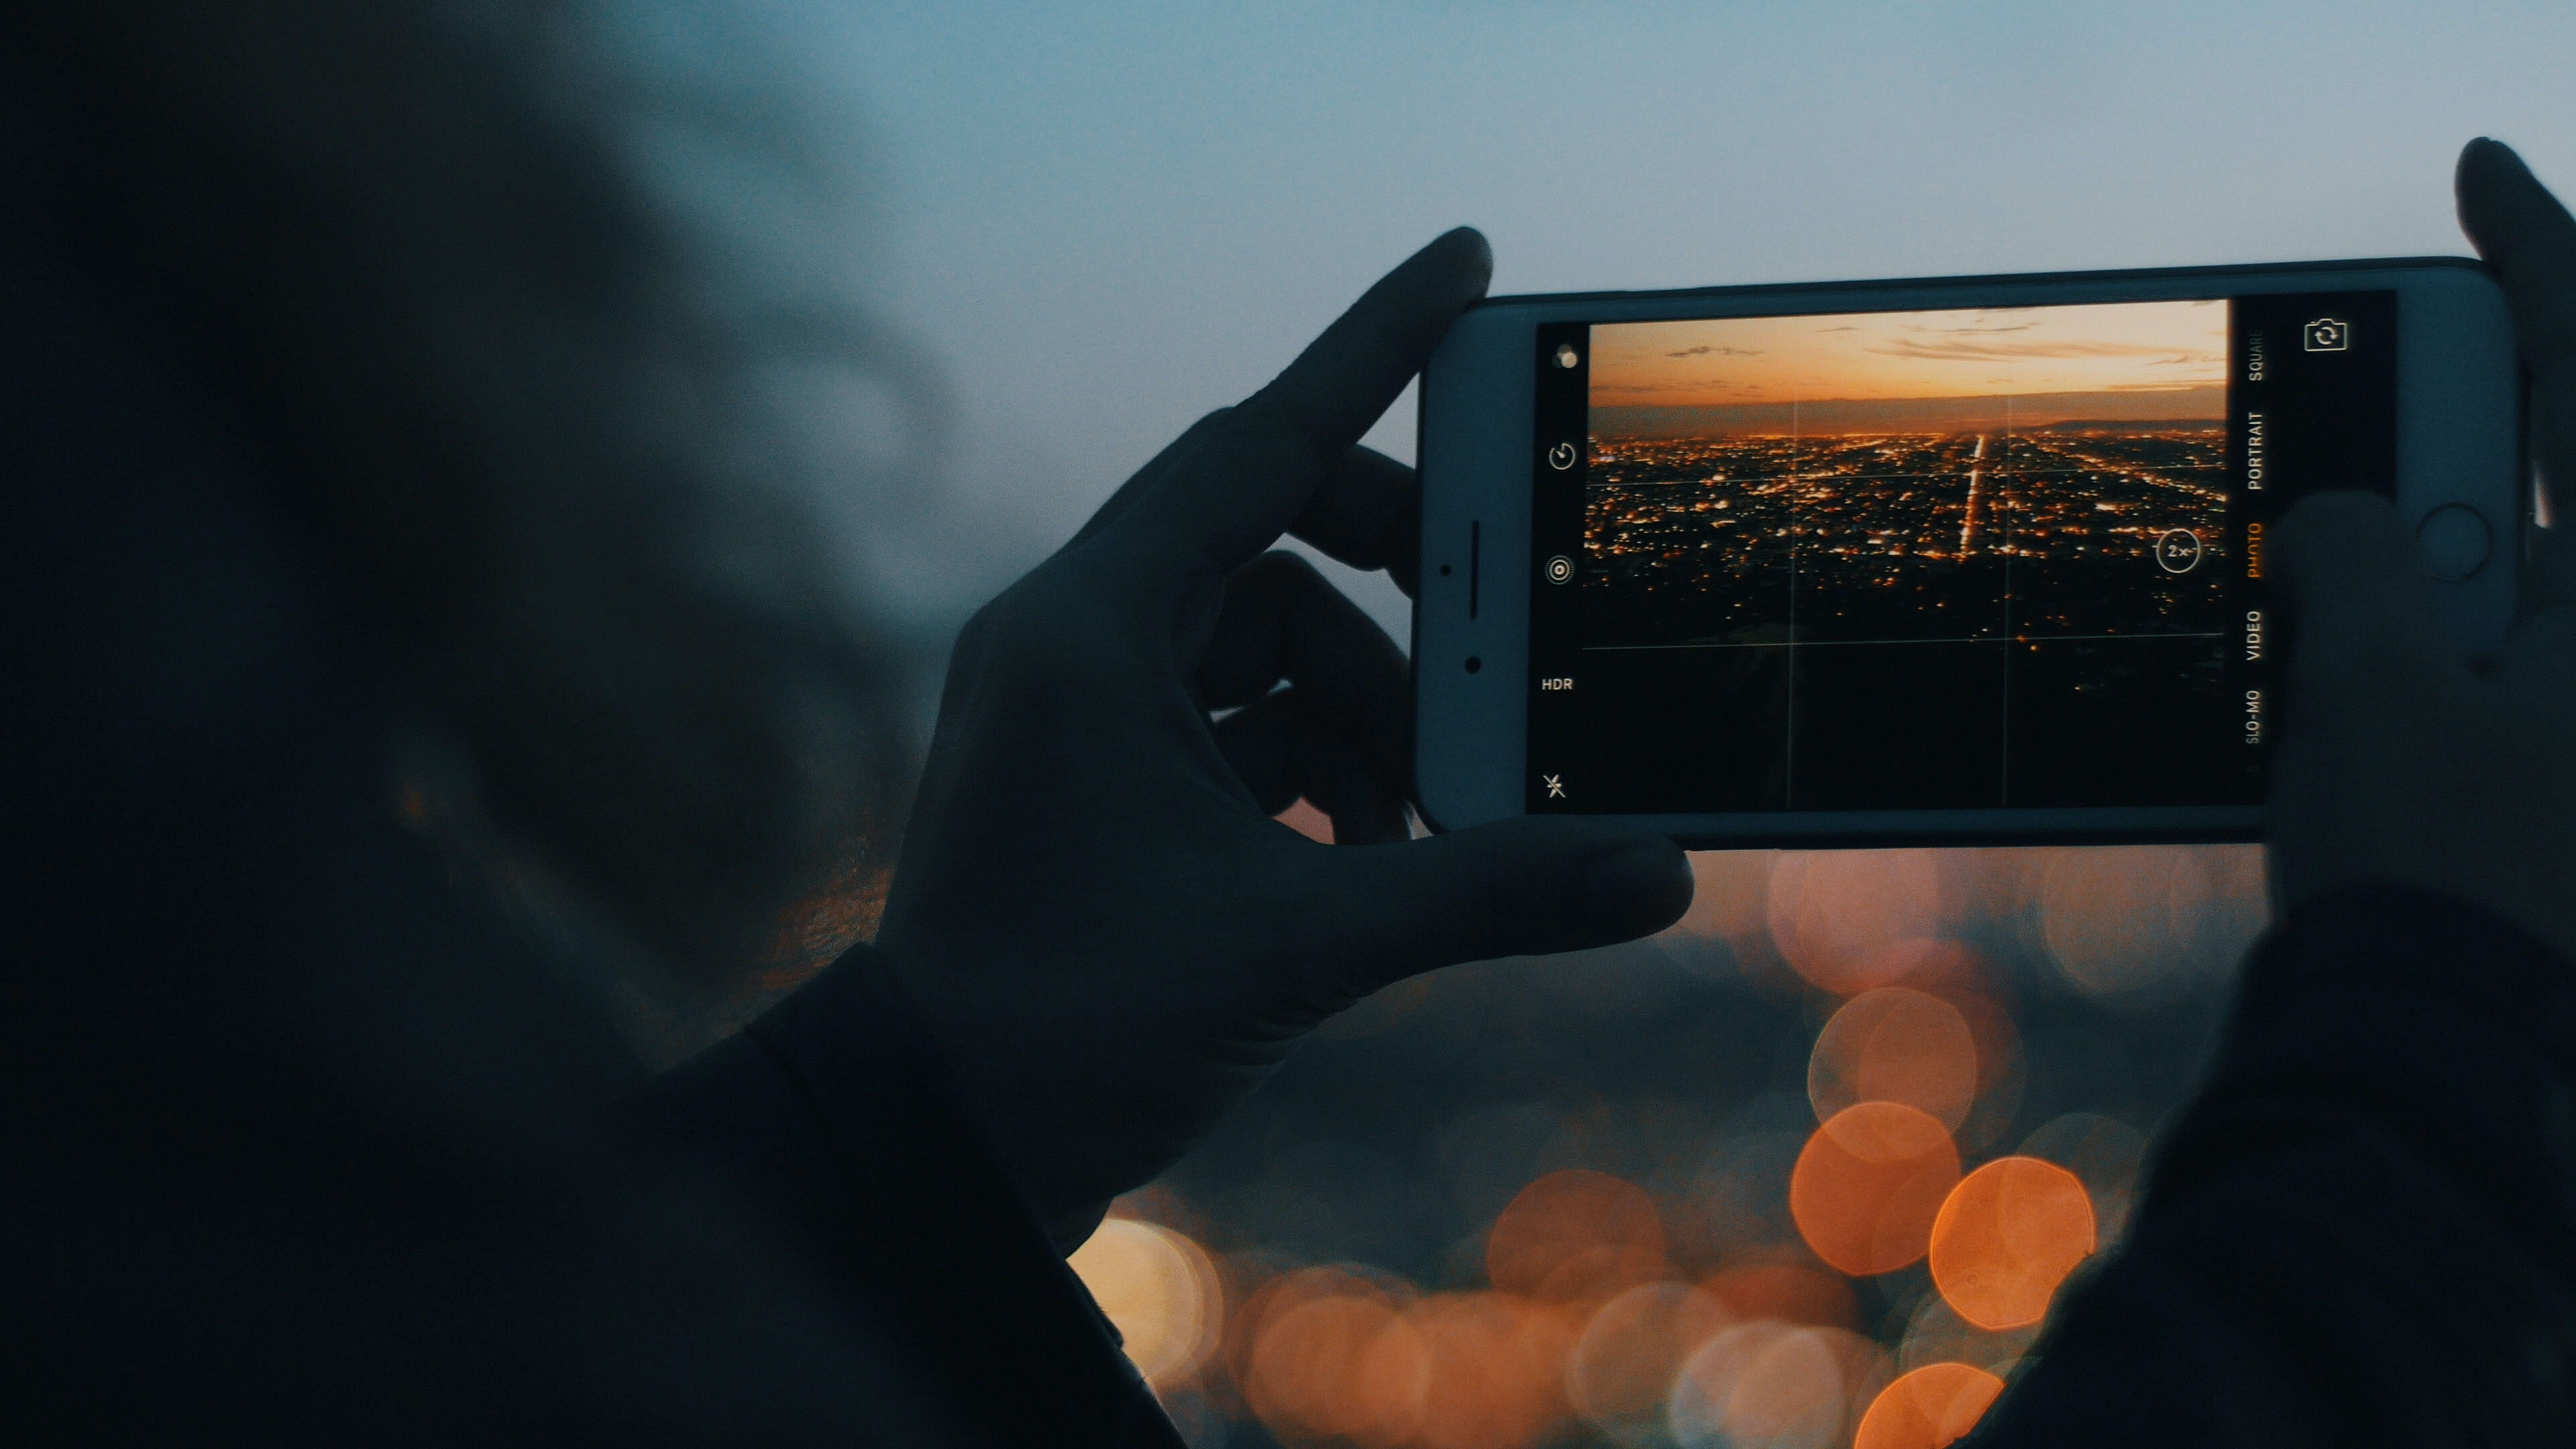 person capturing photo of city using iPhone during orange sunset